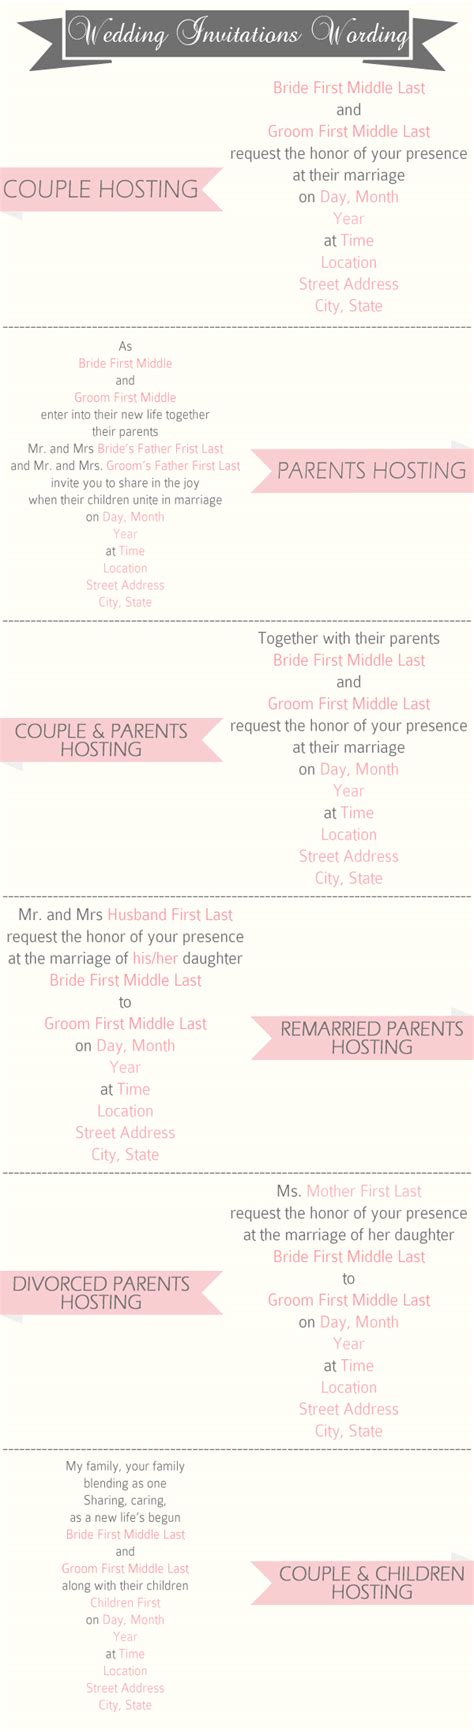 wedding invitation mr and guest wedding invitation wording sles to invite guests